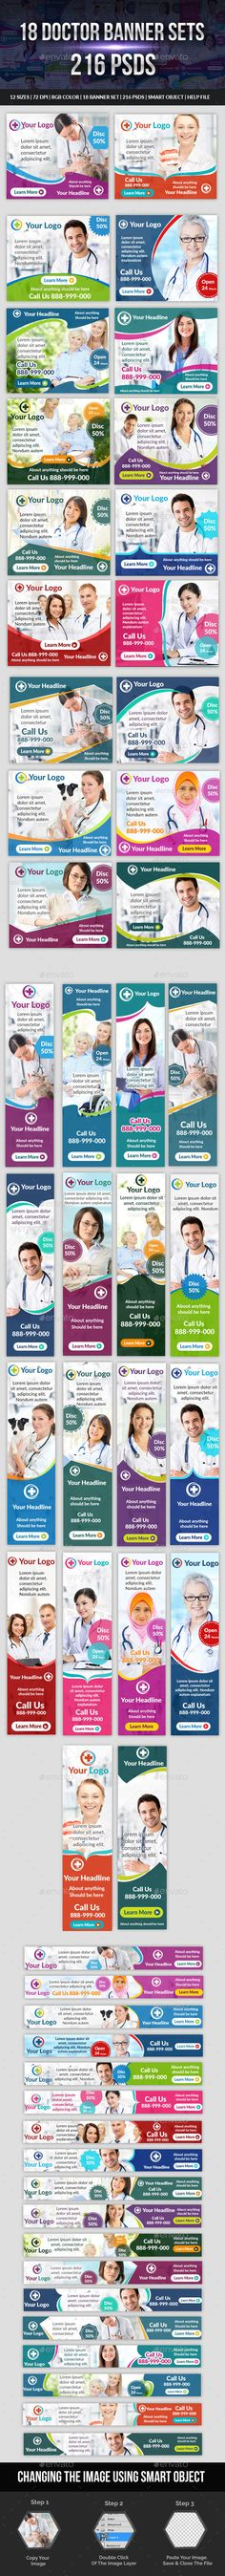 18 Doctor Banner Sets Templates PSD. Download here…